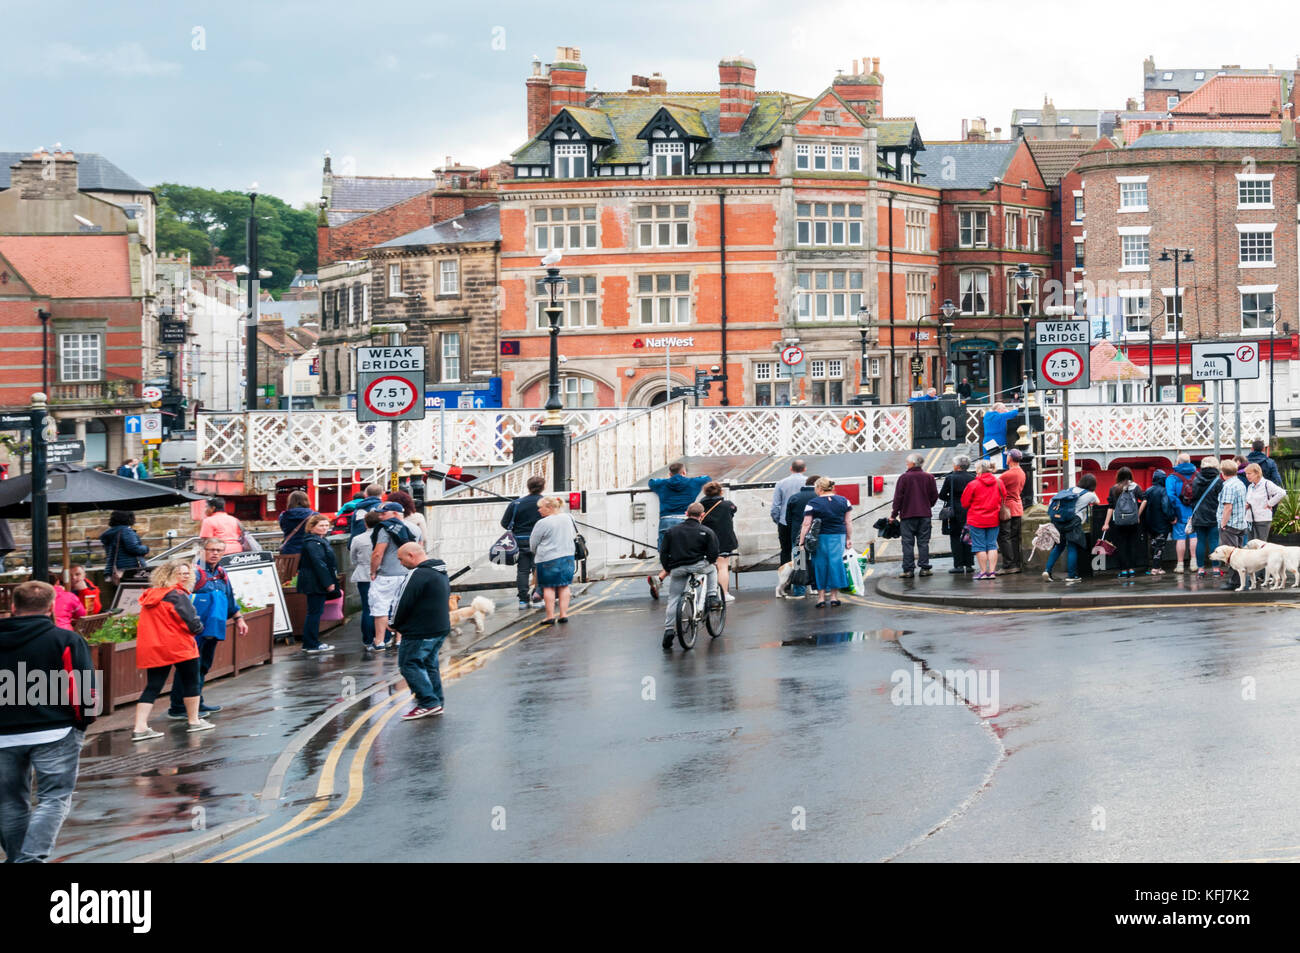 Pedestrians waiting for the swing bridge across Whitby harbour to open. - Stock Image